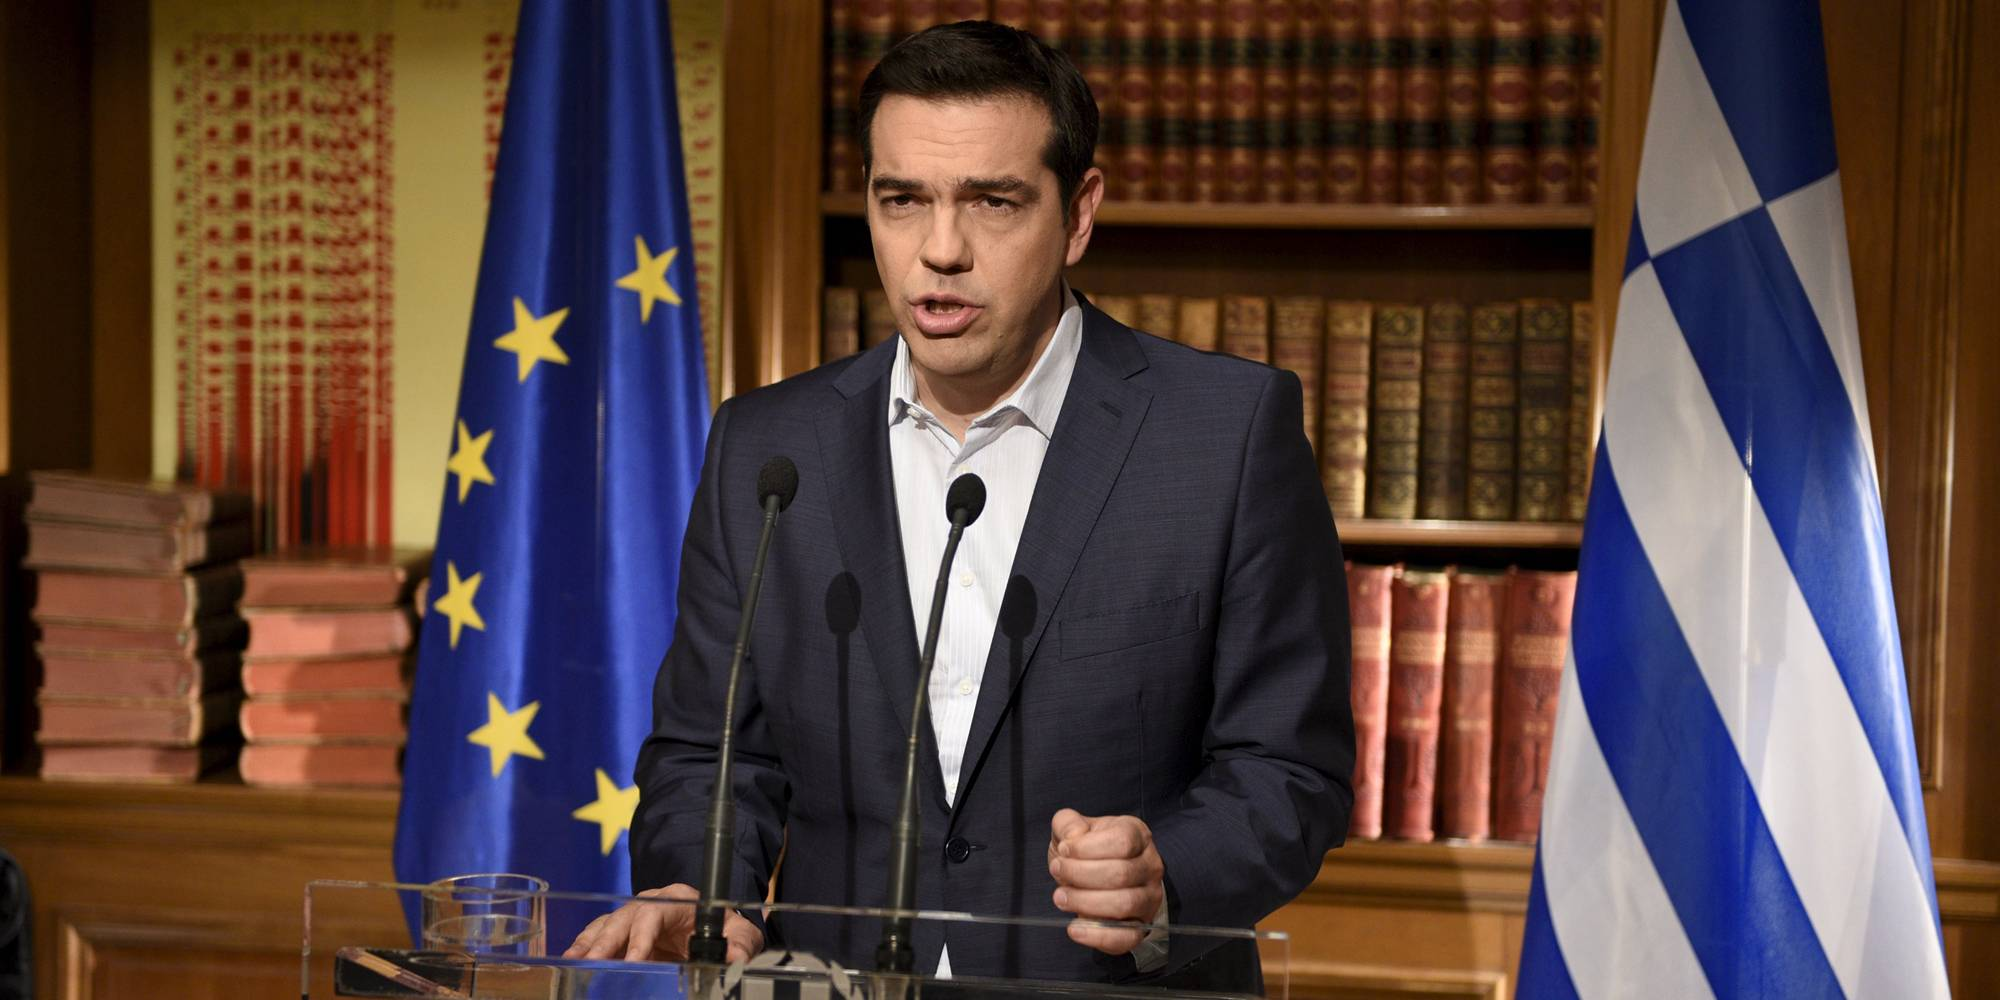 Dumb and dumber: How Europe turned a Greek crisis into a calamity